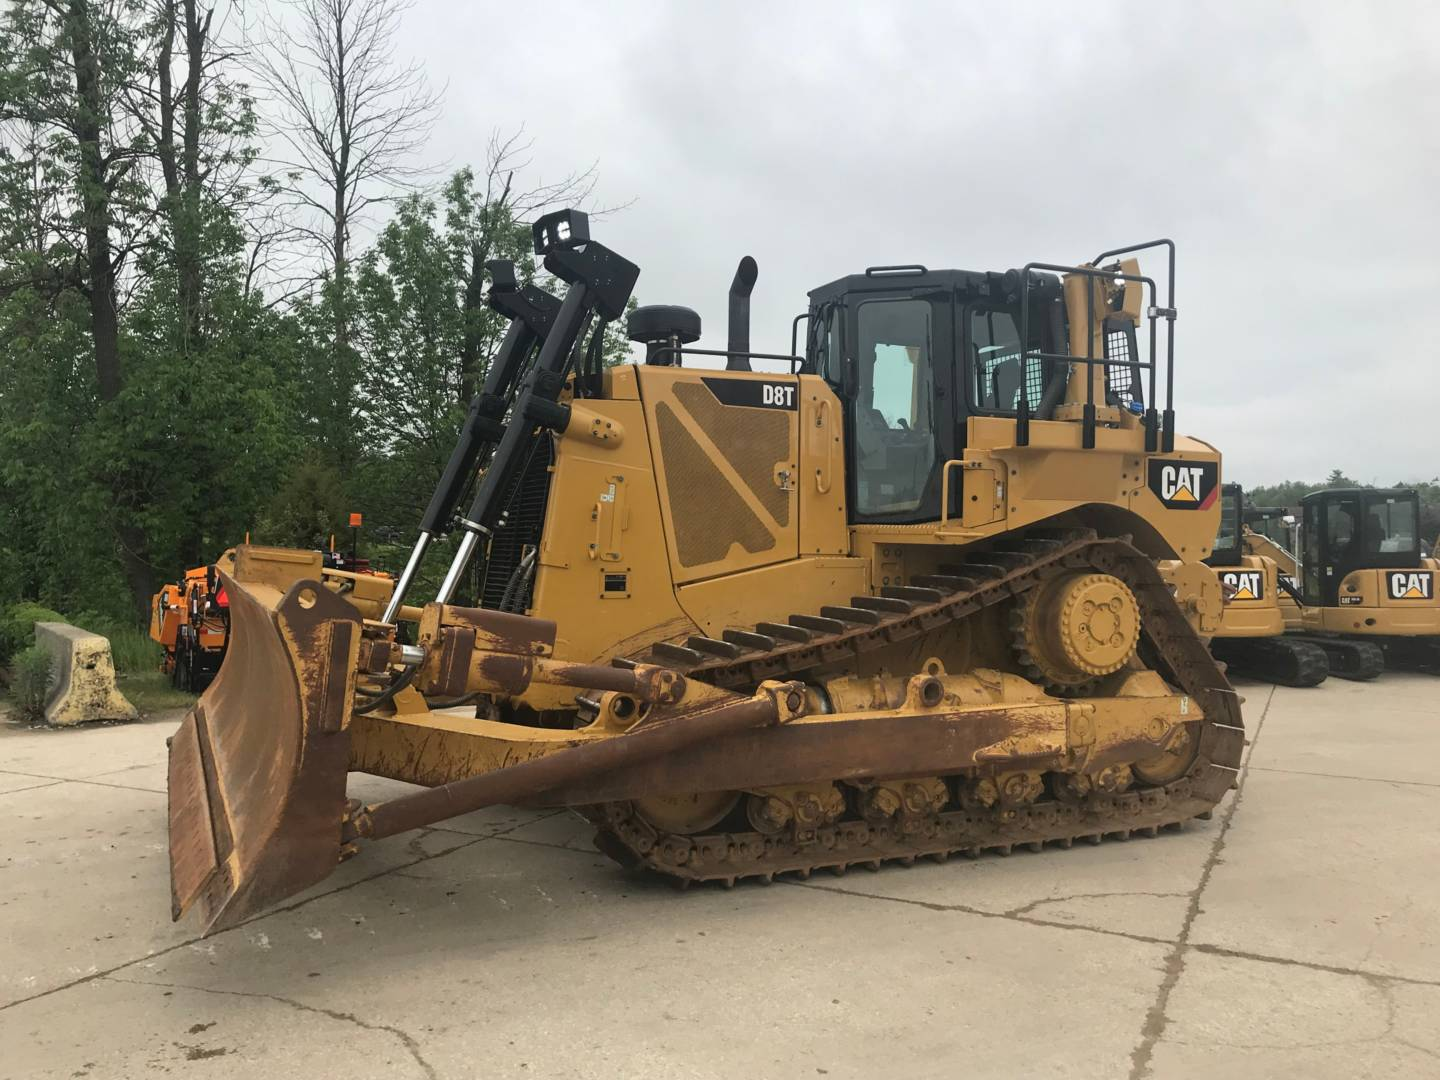 Used Dozers for Sale in NJ, PA, DE and Staten Island | Foley Inc